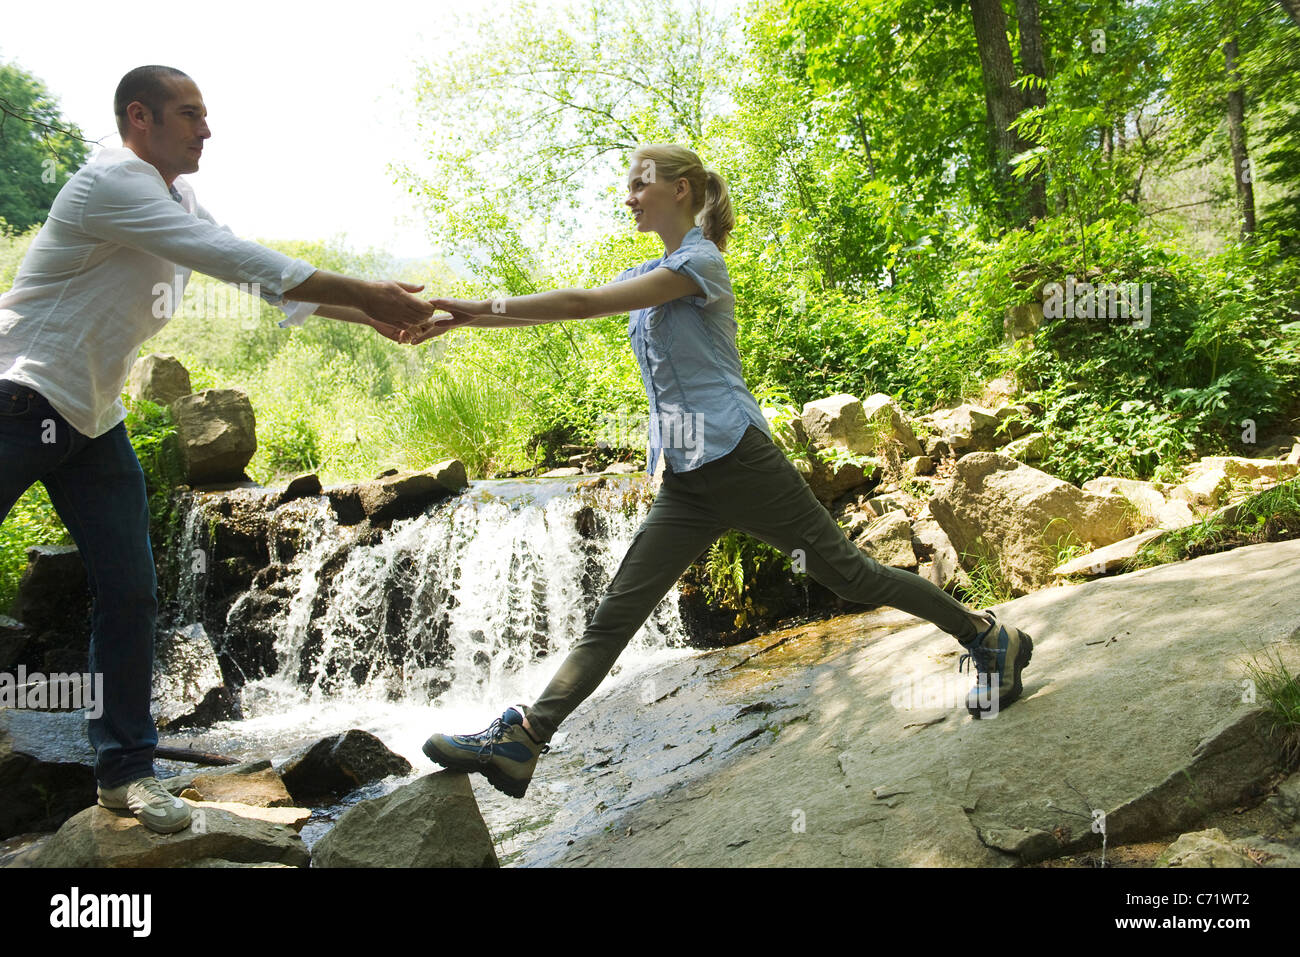 Couple hiking - Stock Image